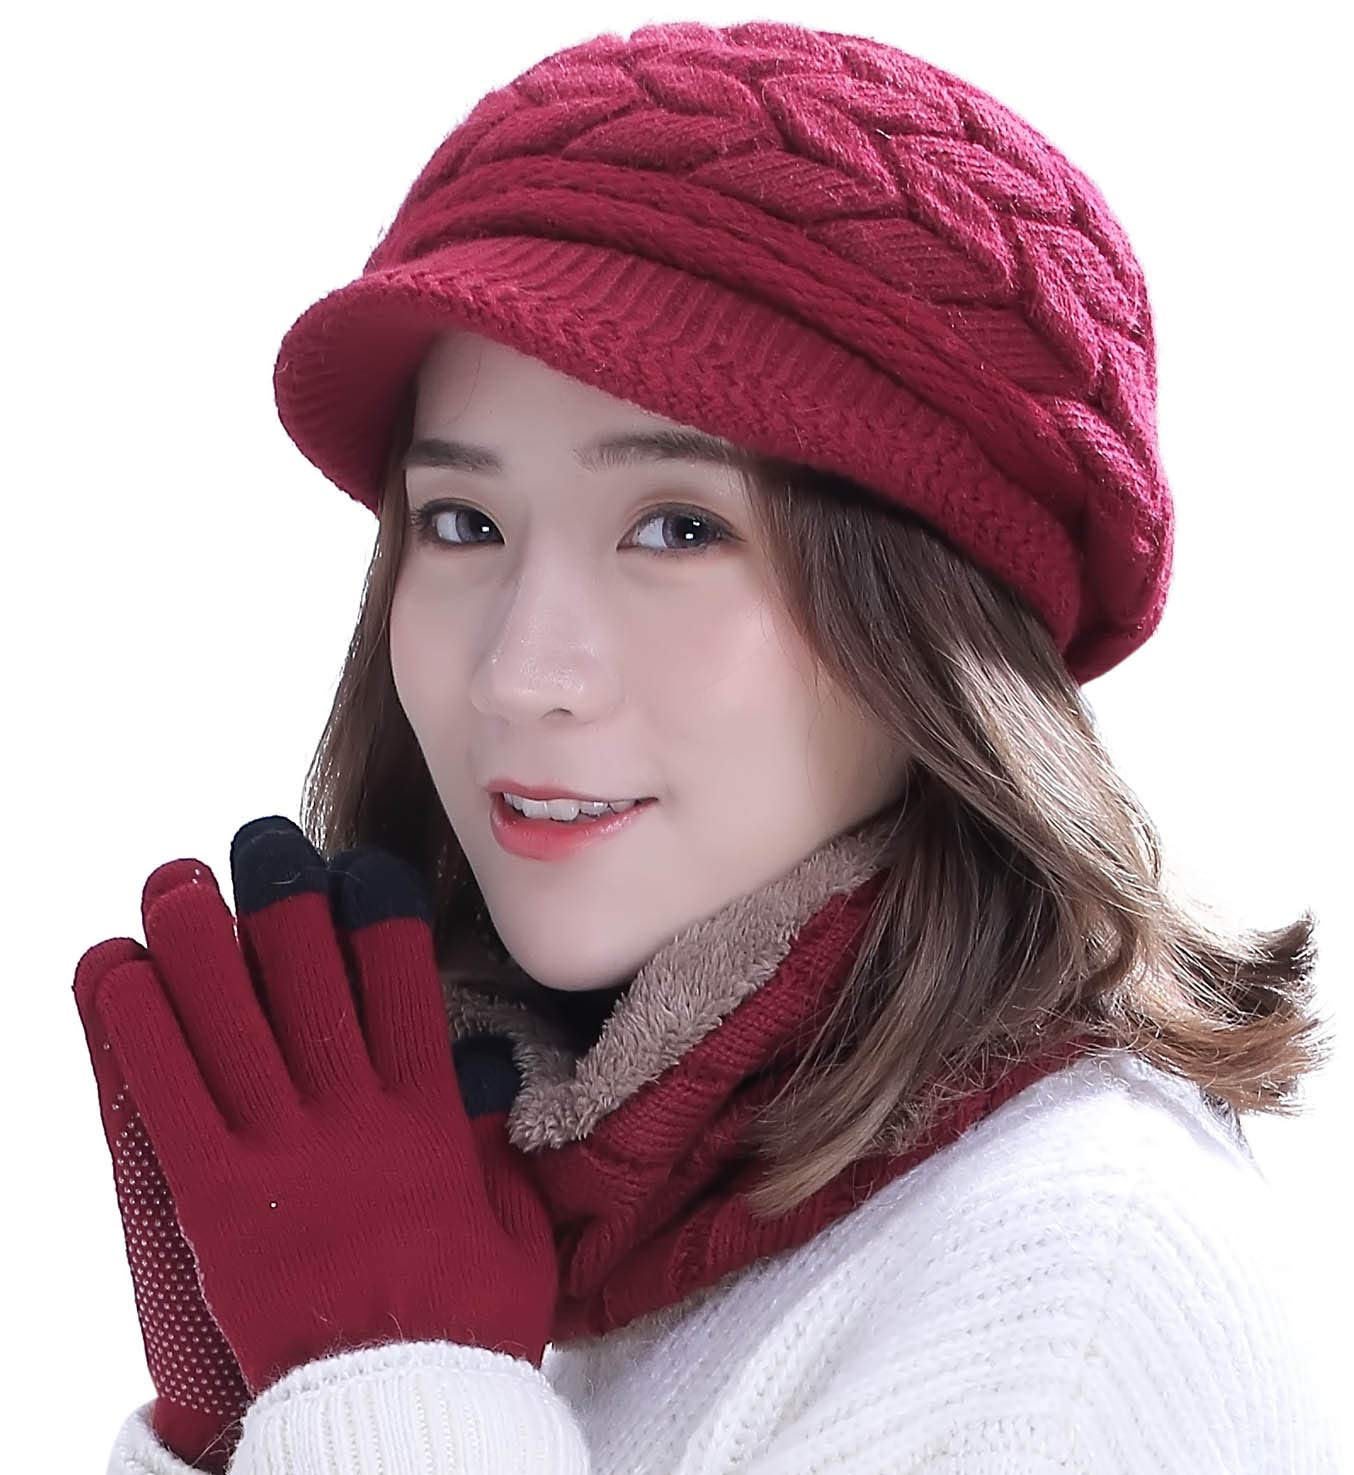 Winter Hat Gloves Scarf Set for Women Visor Snow Knit Skull Cap Infinity Scarves Touch Screen Mittens Burgundy by HINDAWI